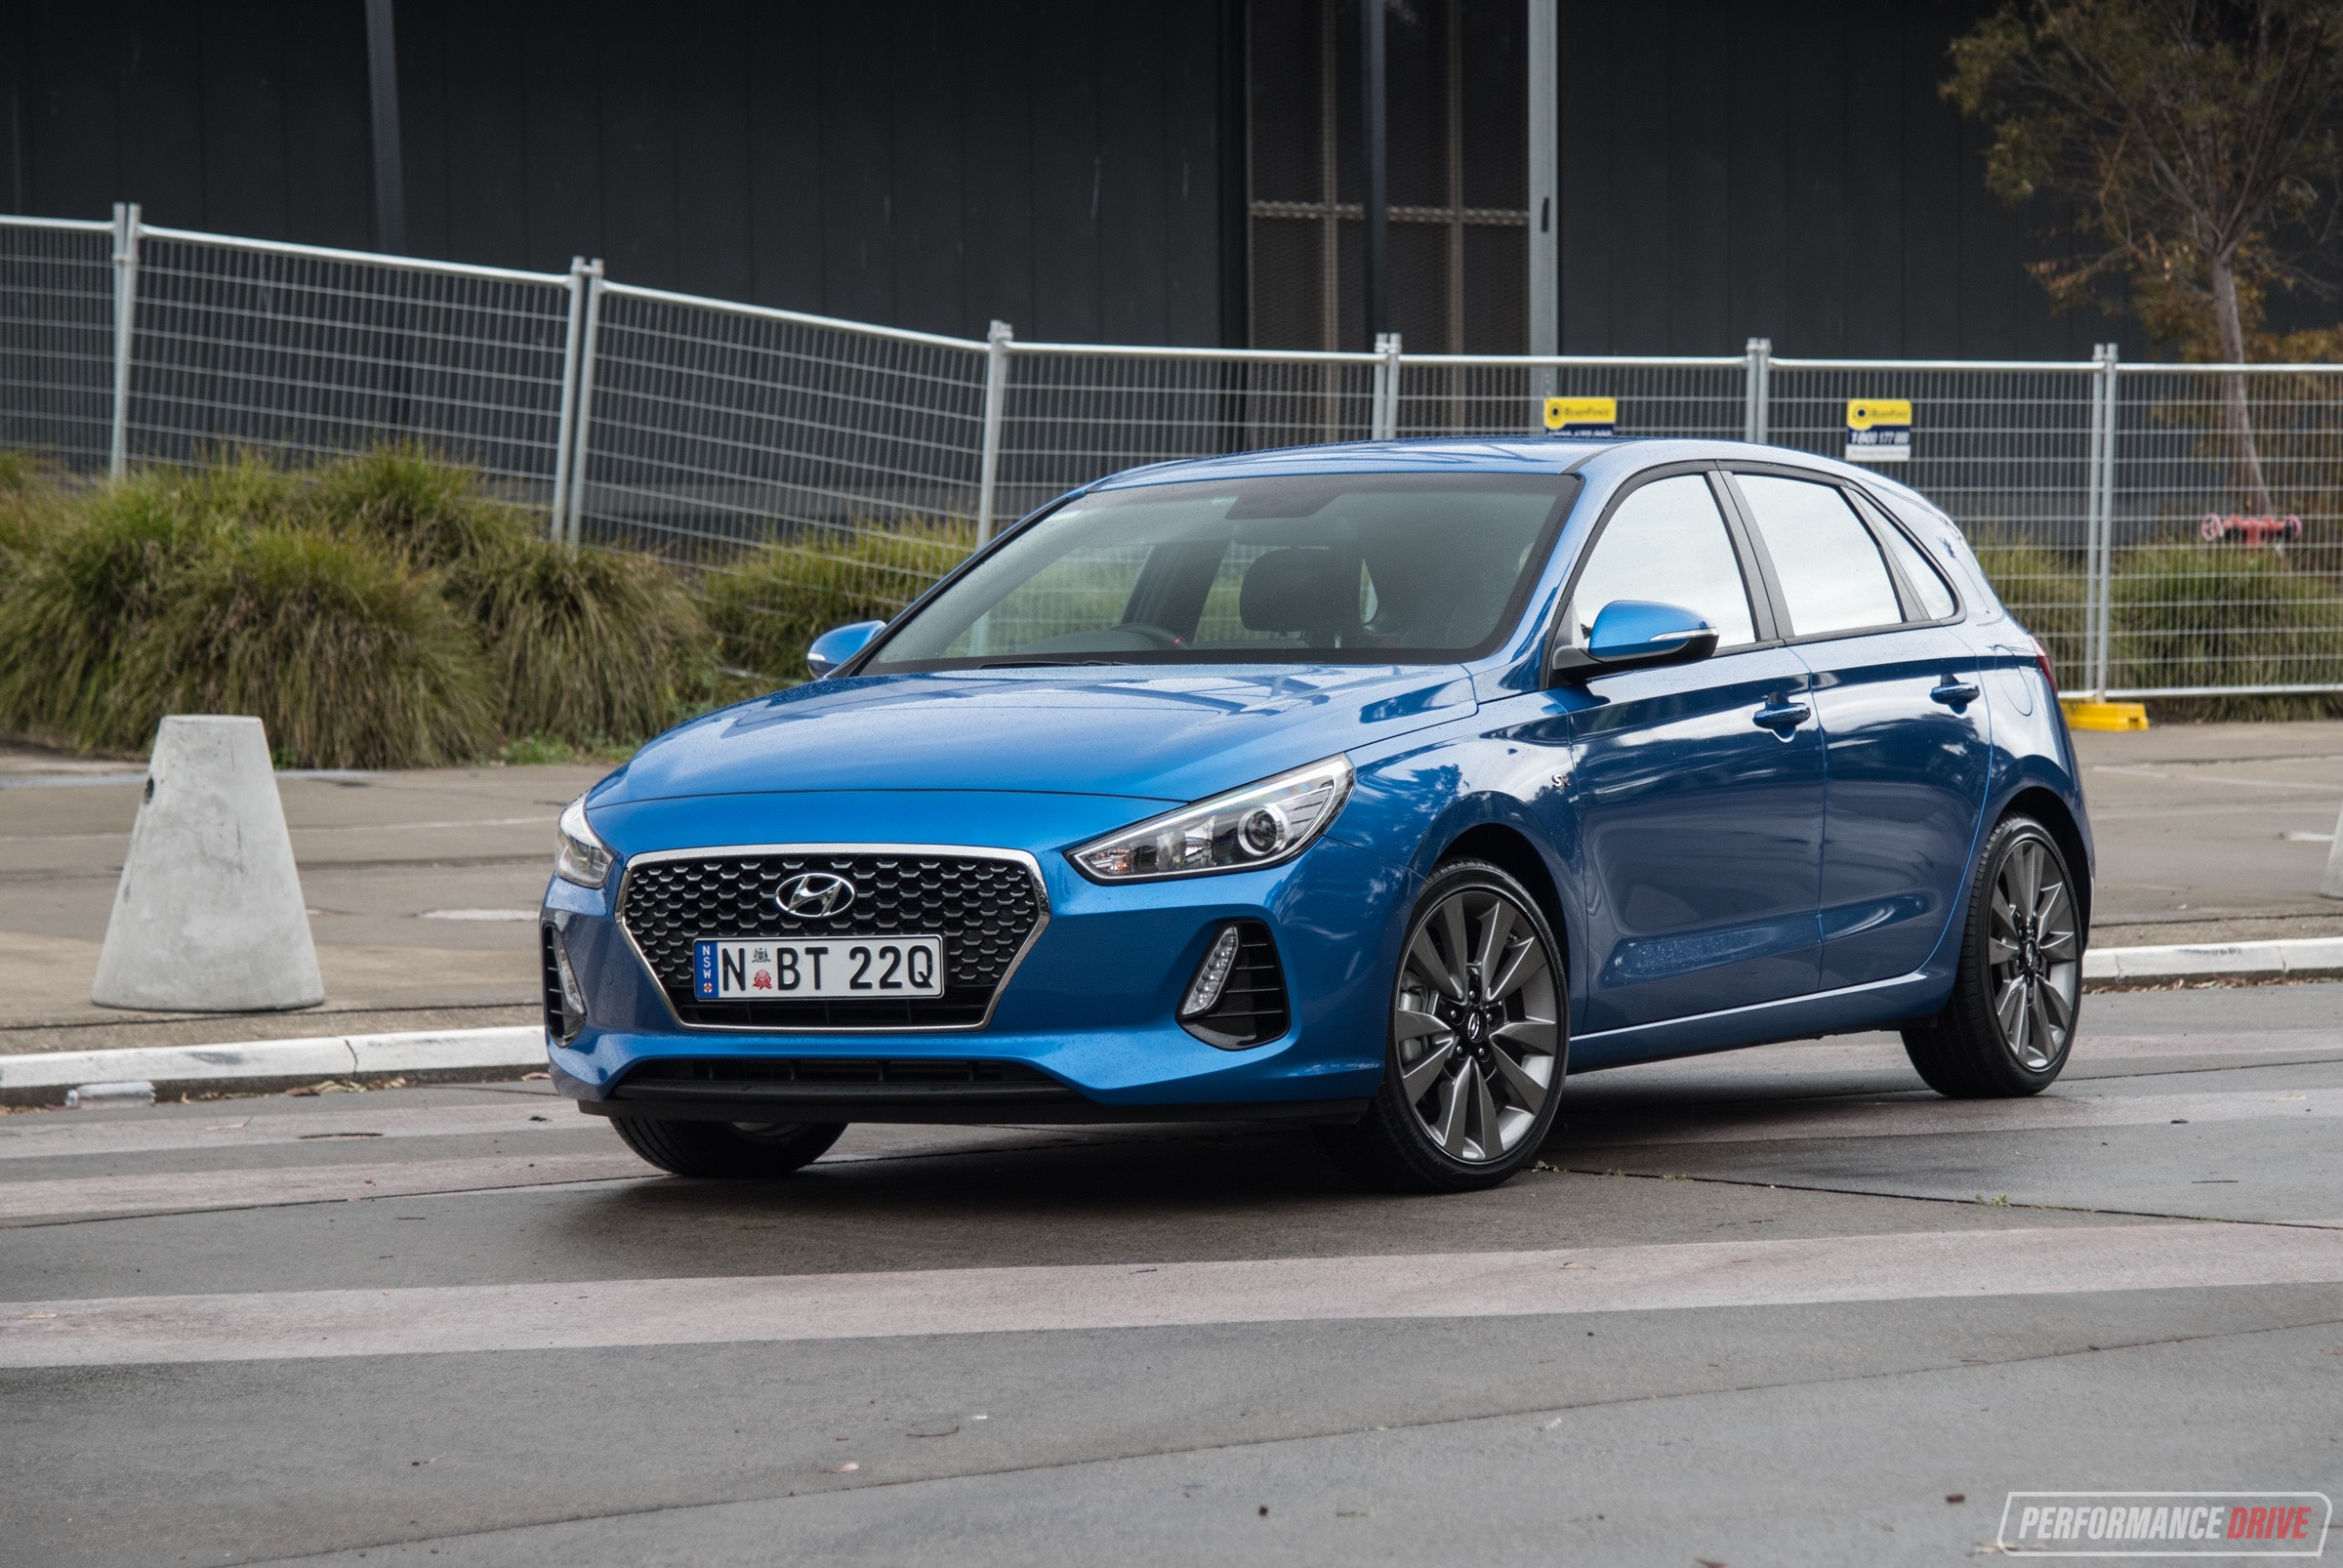 2018 Hyundai i30 SR manual review (video) | PerformanceDrive